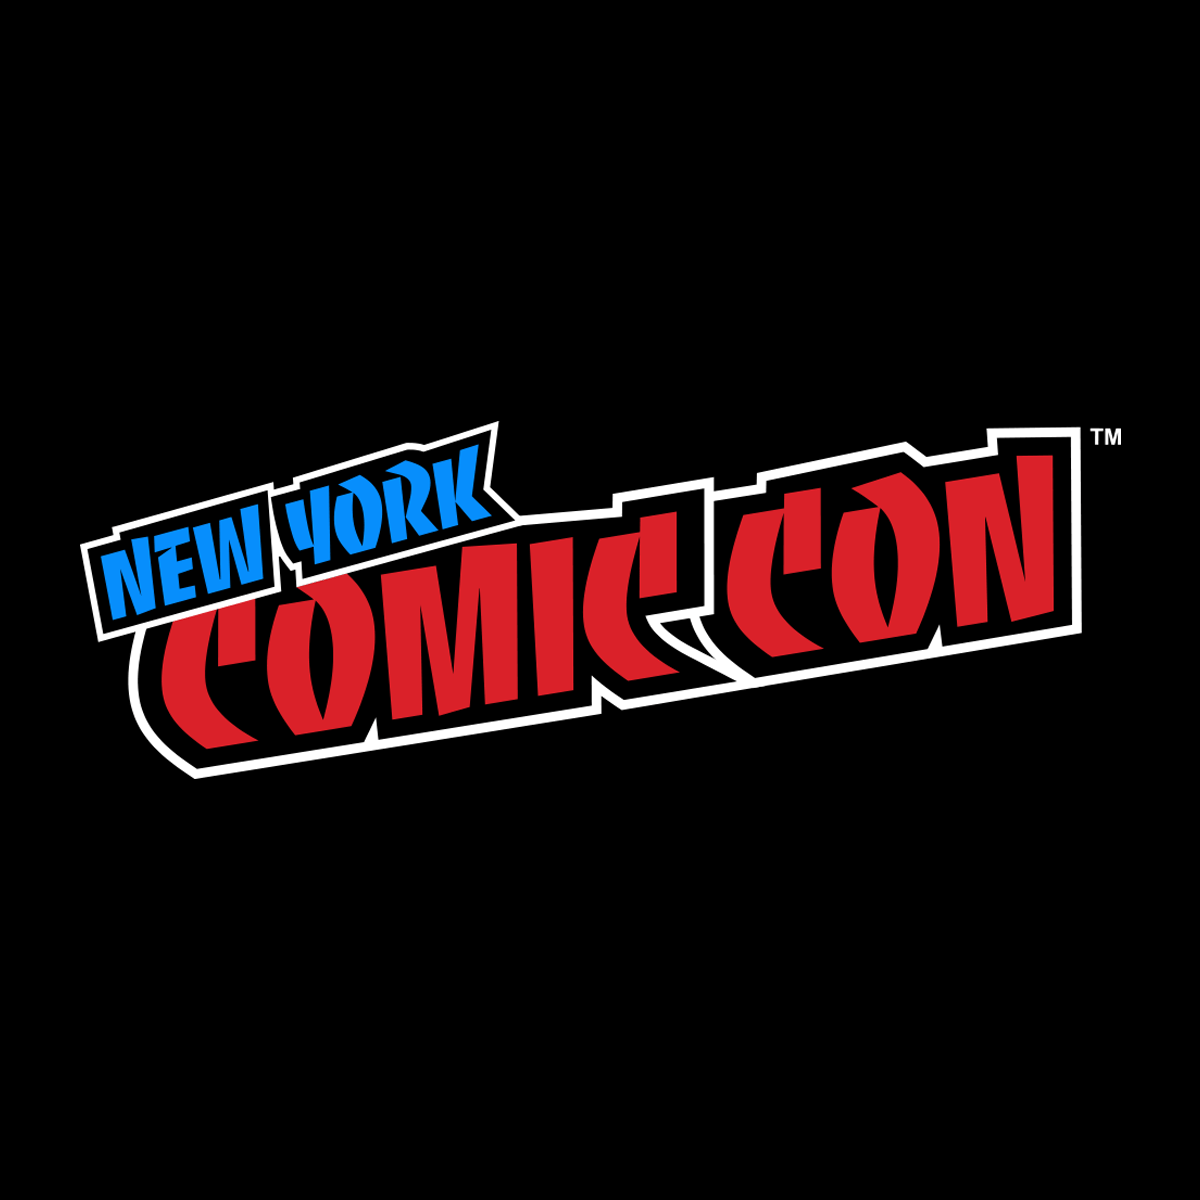 Coming Up: US Comic Convention Round Up – are you ready for New York Comic Con?